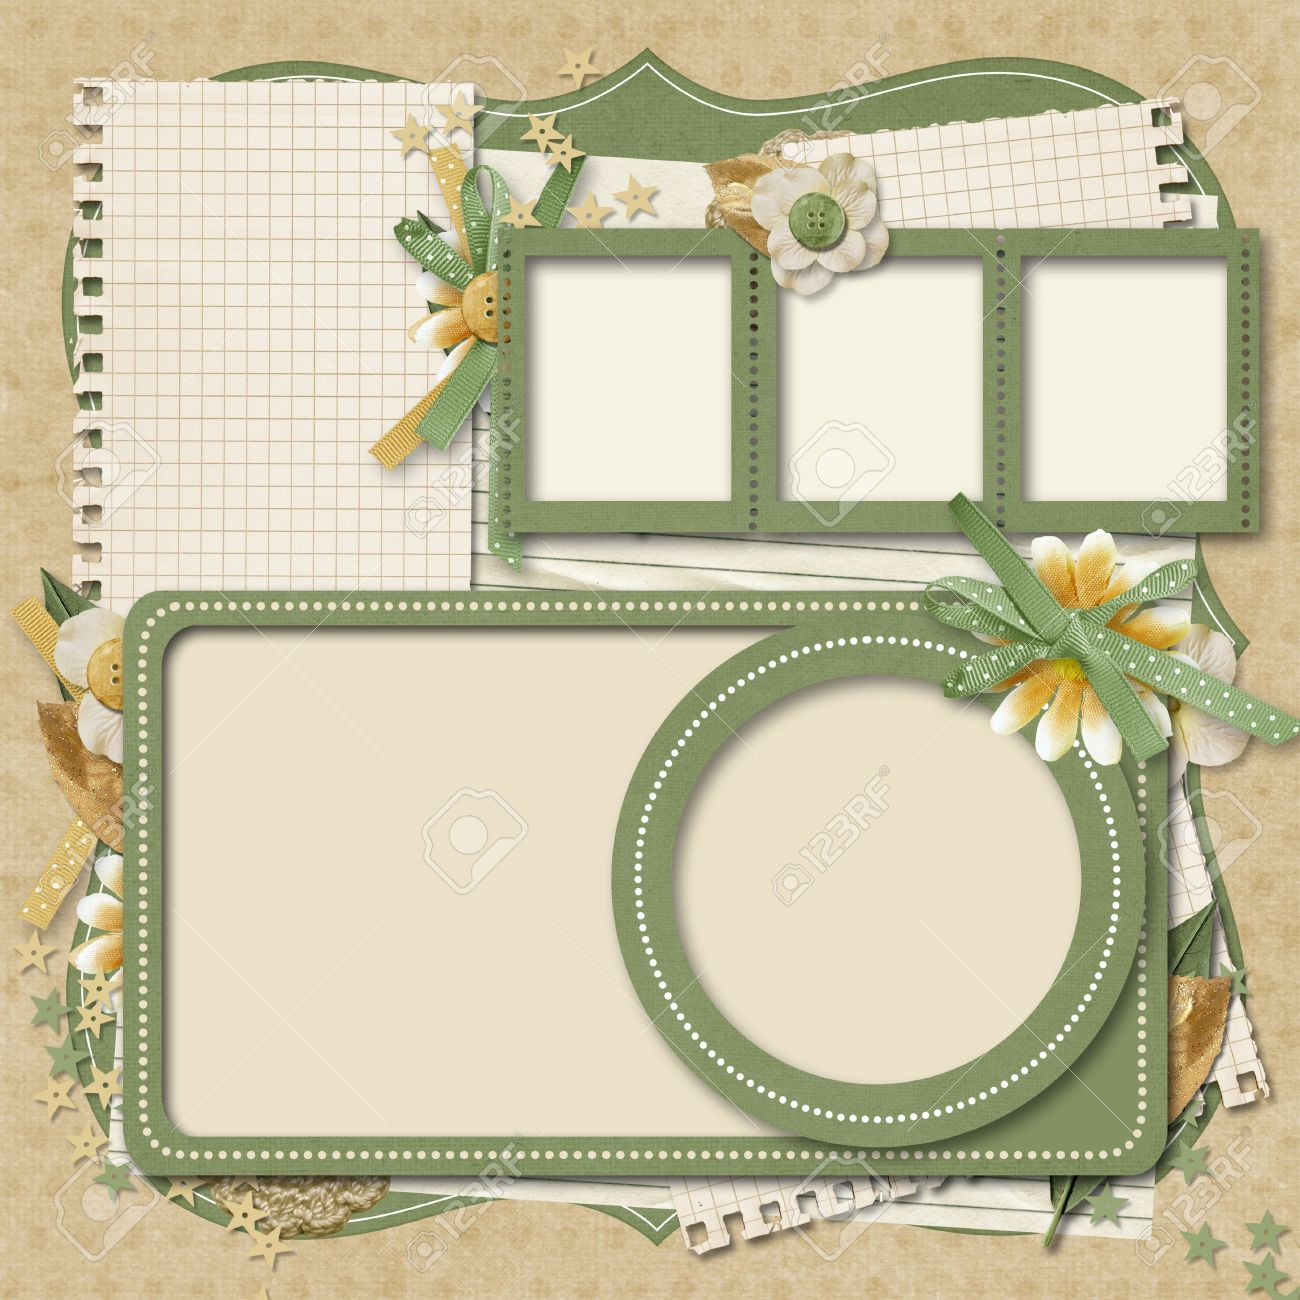 Retro Family Album 365 Project Scrapbooking Templates Photo – Photo Album Templates Free